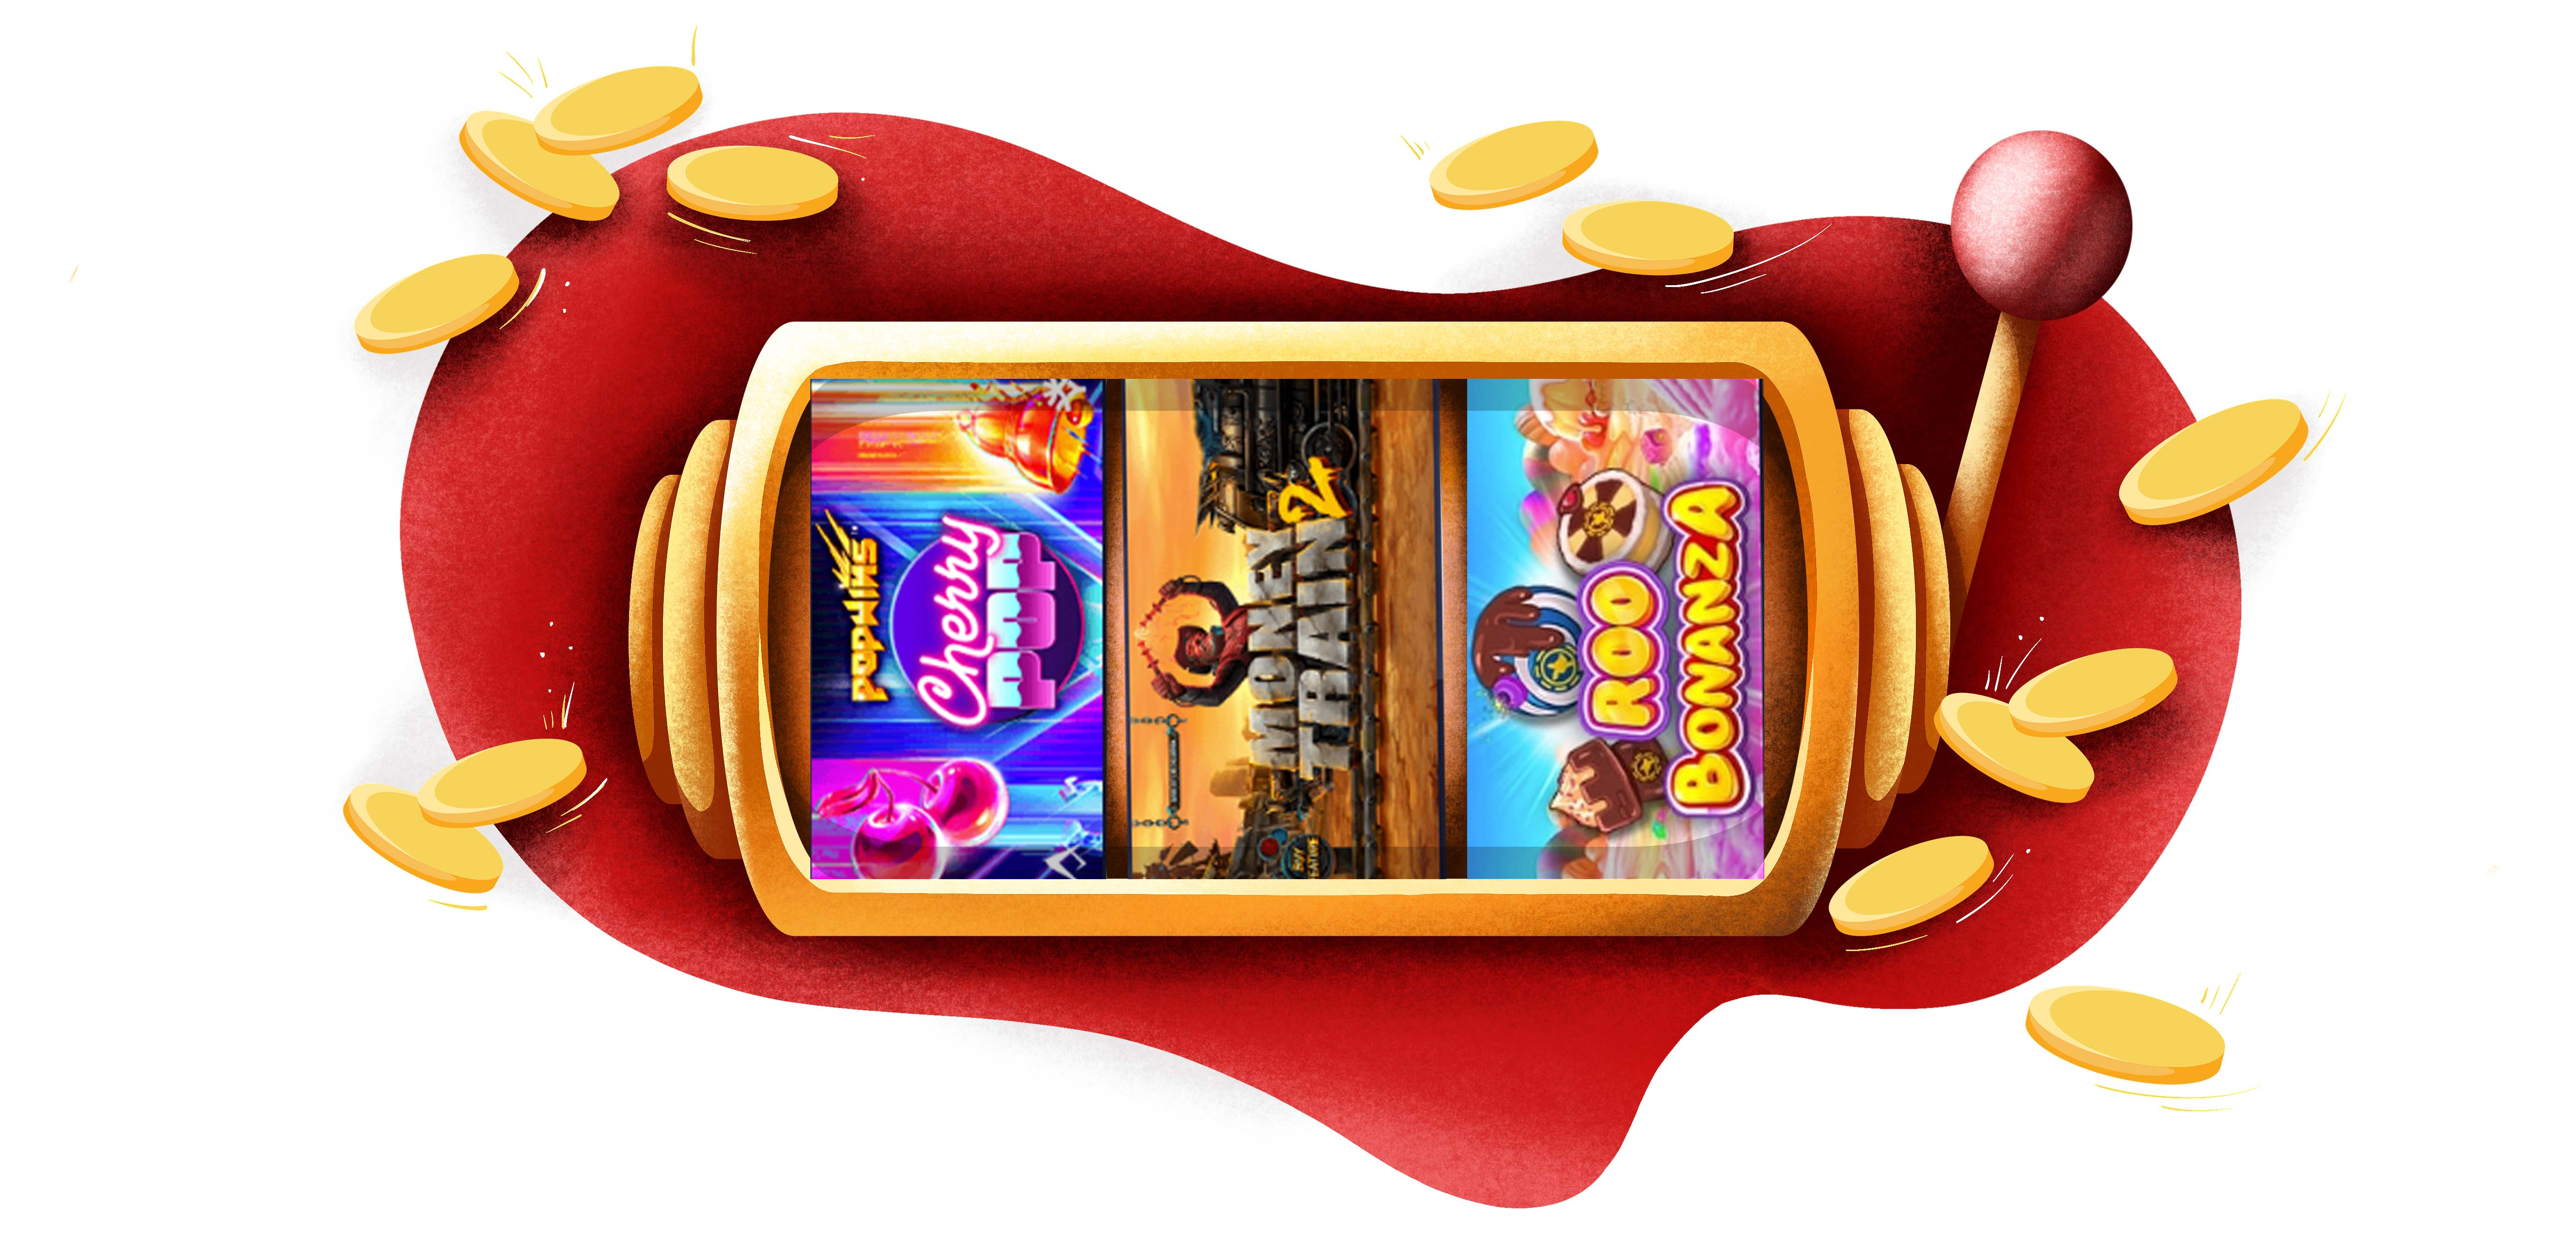 Roobet offers a variety of online games